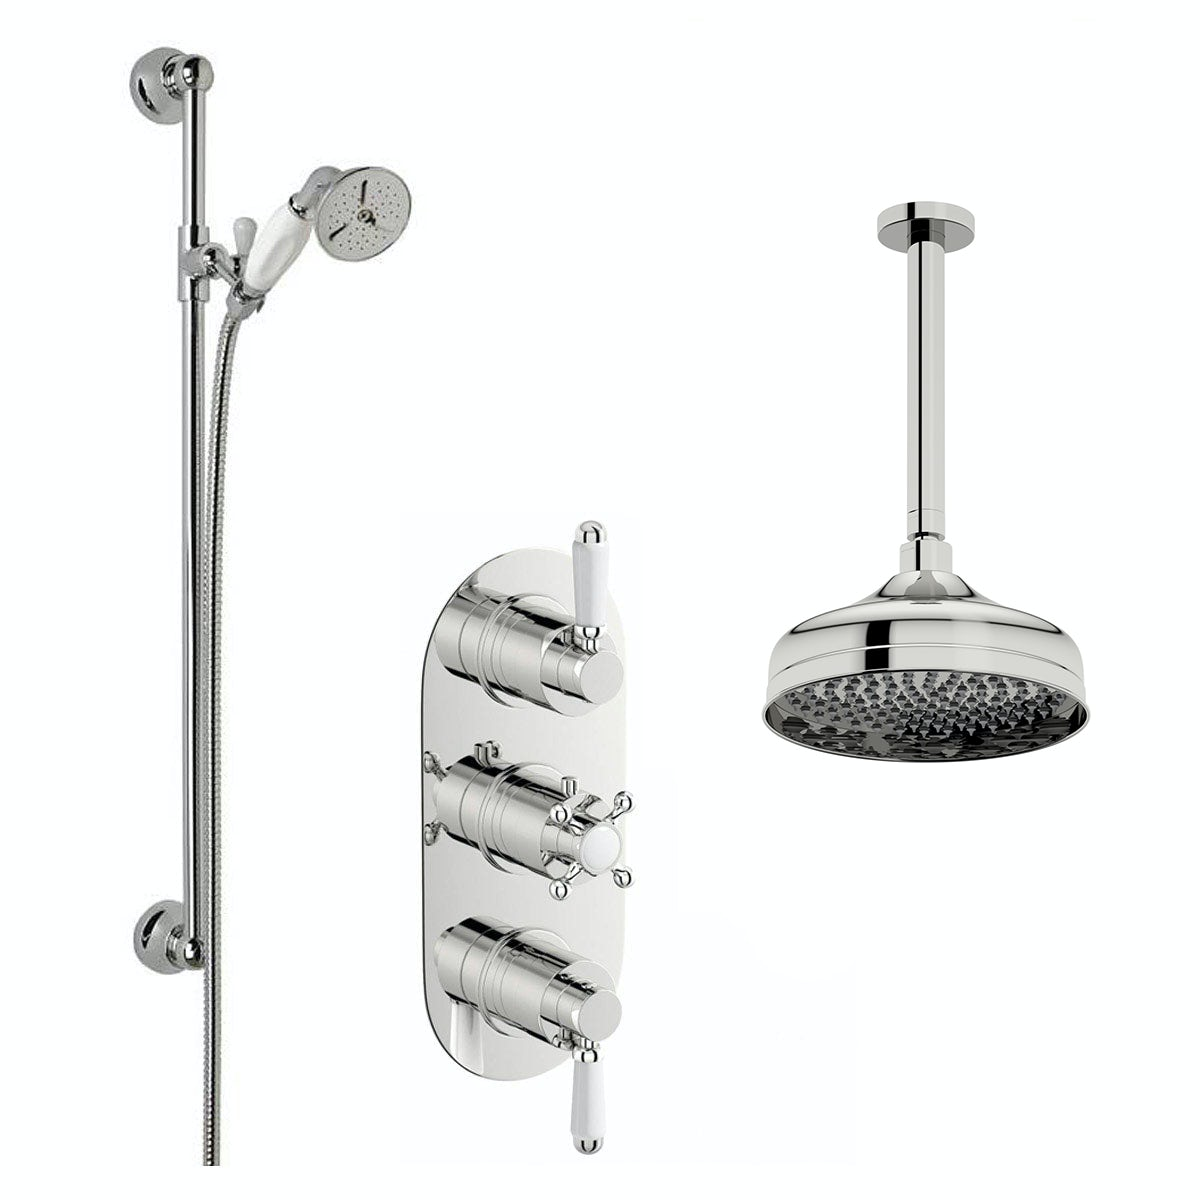 Coniston Thermostatic Ceiling Shower & Slide Rail Set